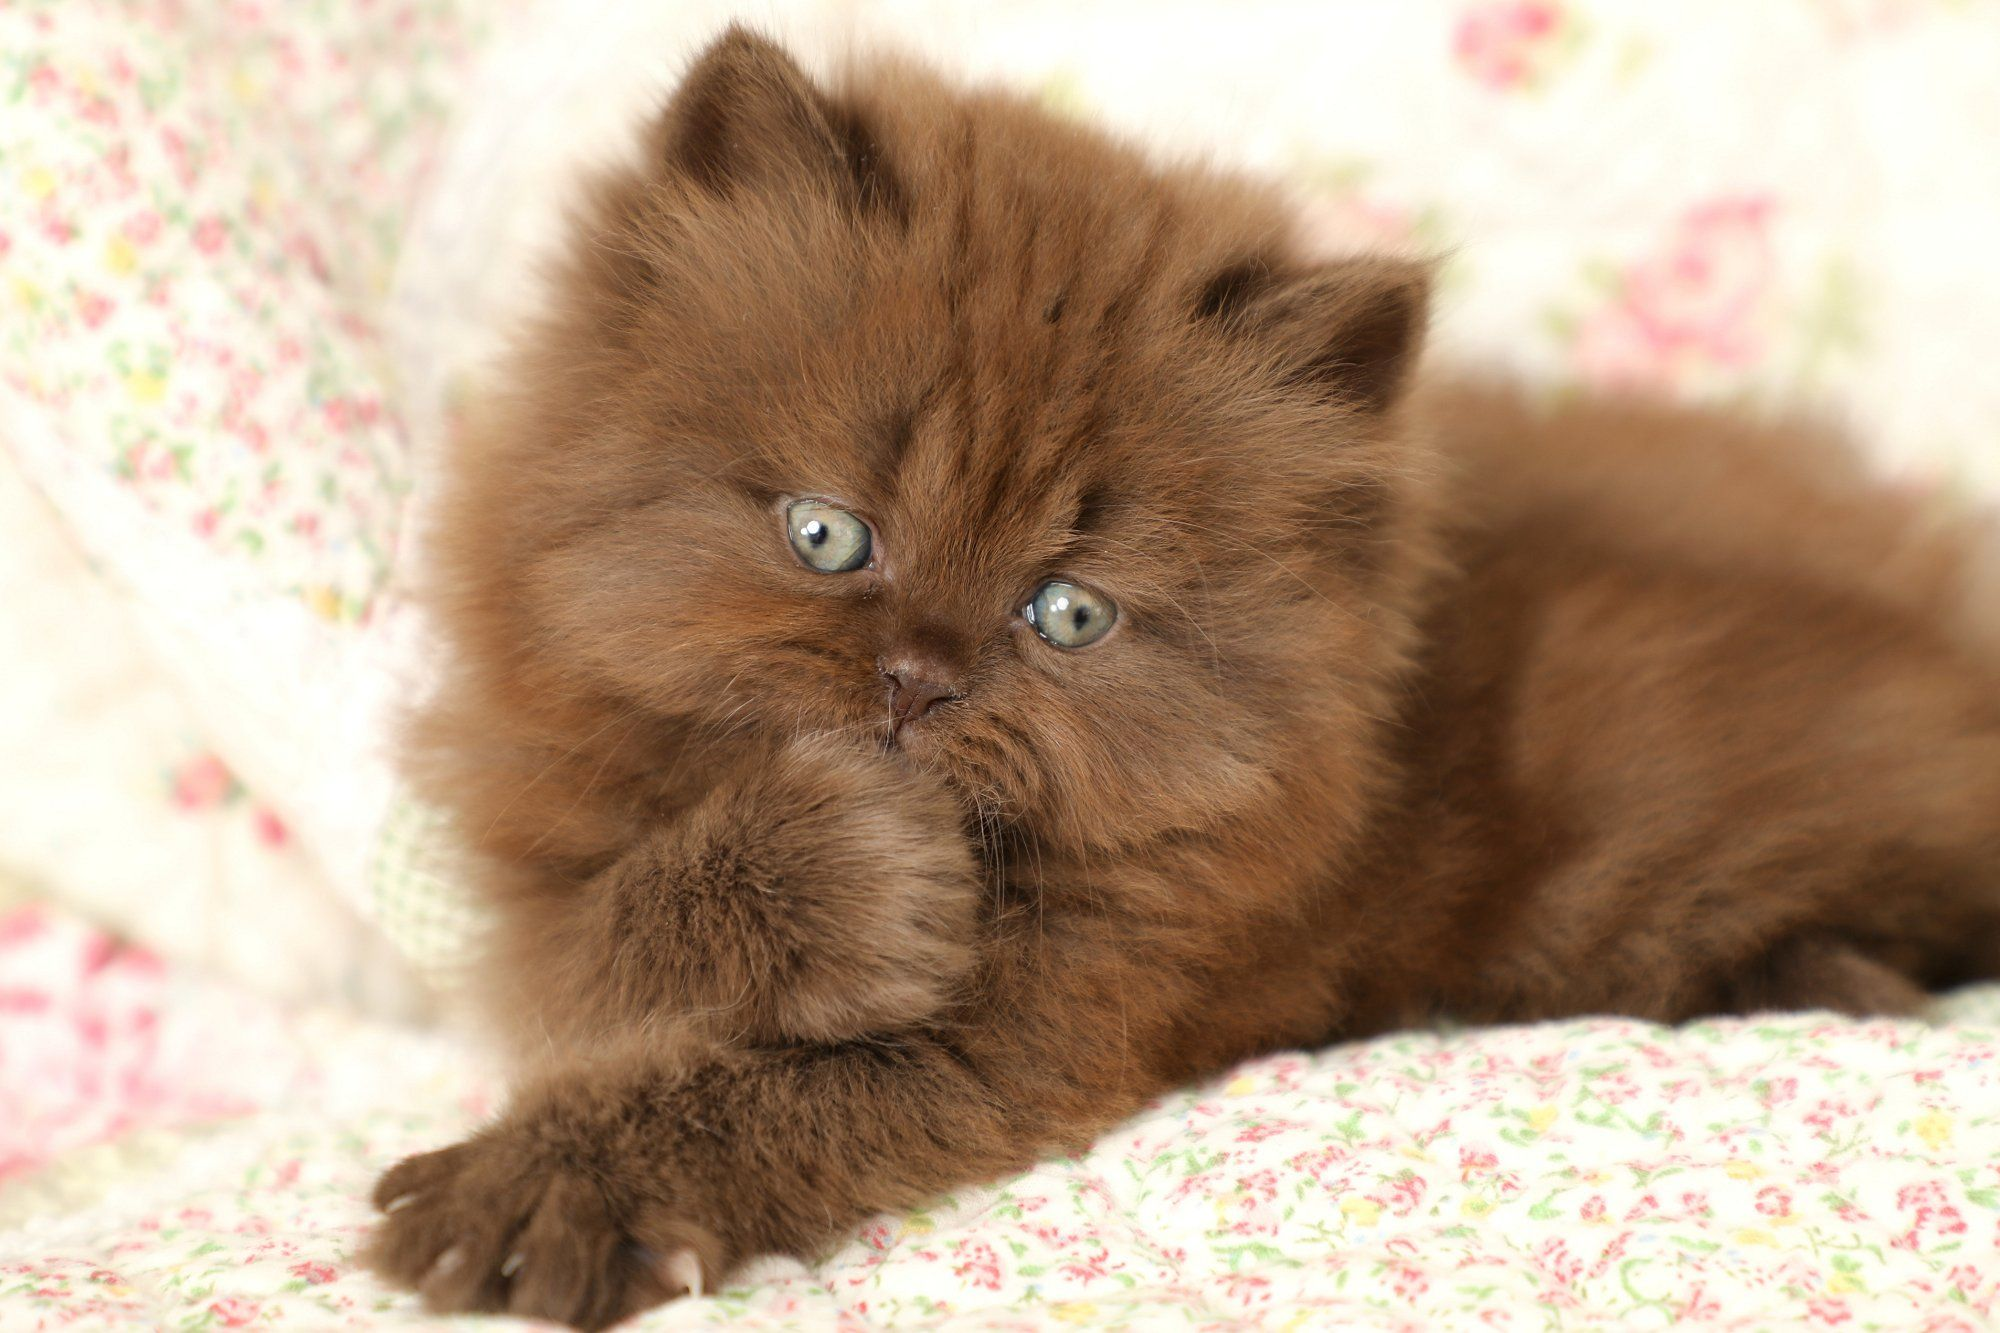 Kisses Chocolate Persian Kitten For Sale Doll Face Persian Kittens The Most Trusted Name In The Business 660 292 2222 Persian Kittens Persian Kittens For Sale Persian Cat Doll Face